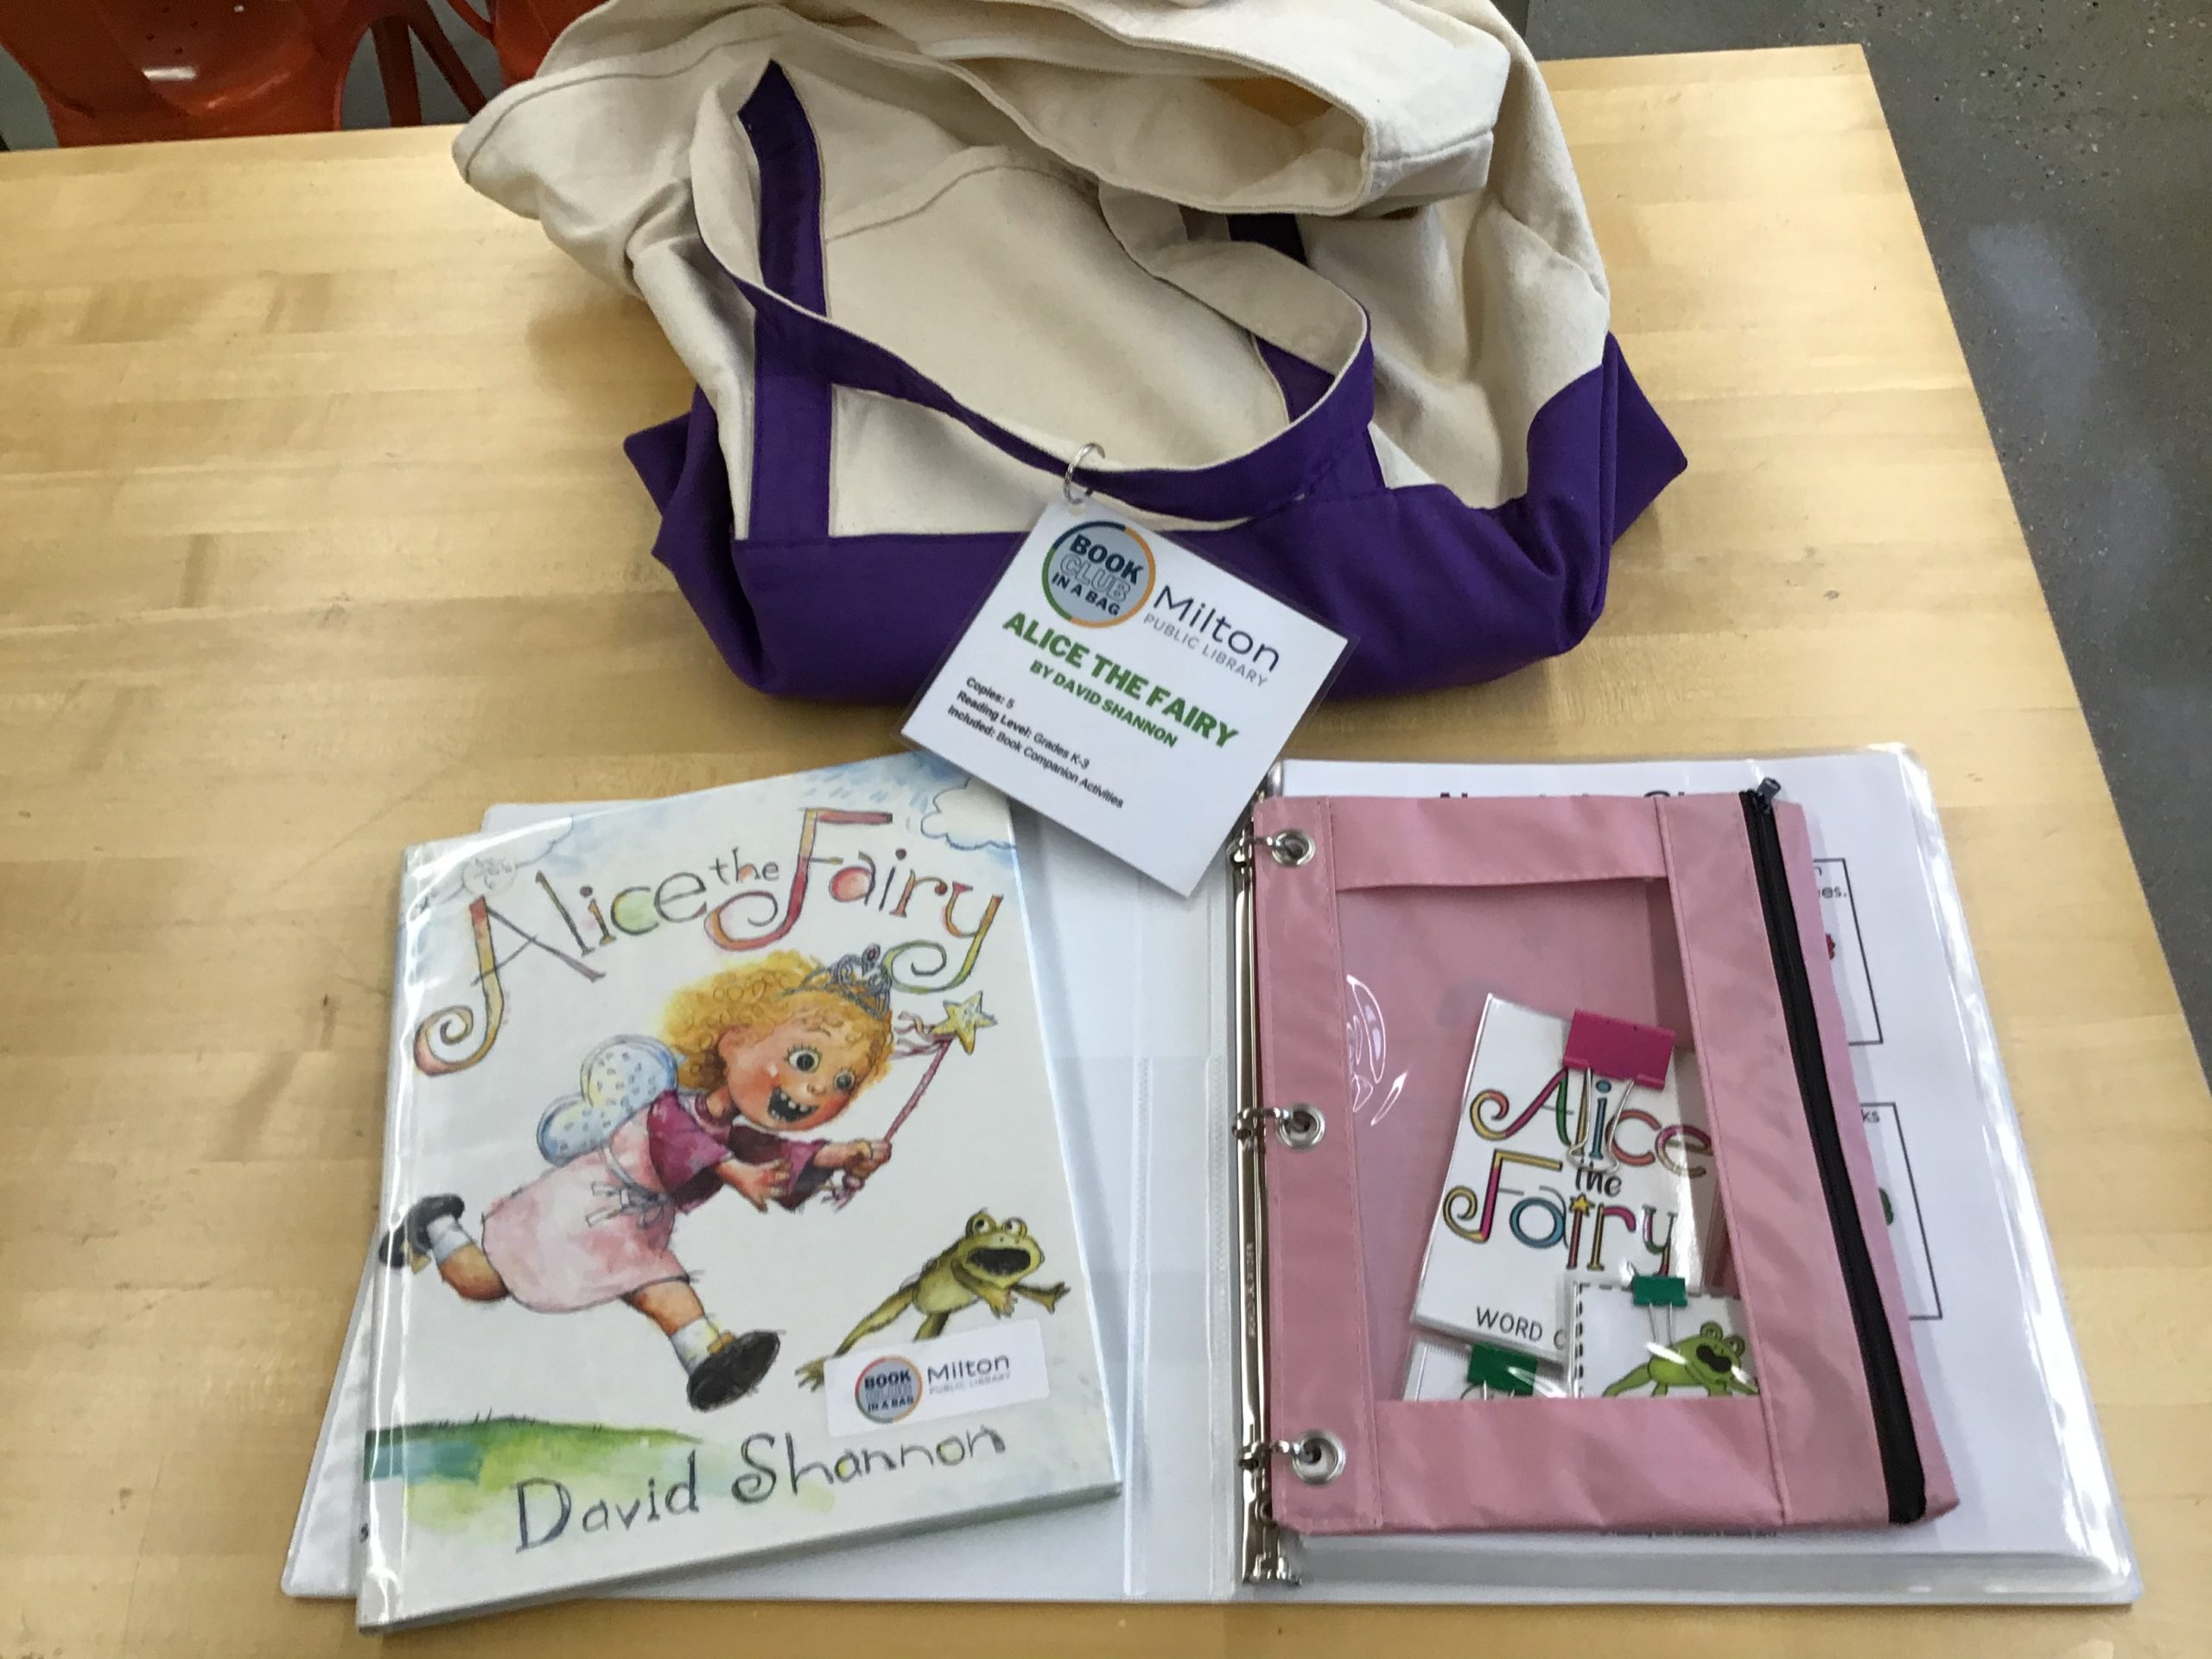 Canvas Bag with the book Alice the Fairy and the book club guide next to it